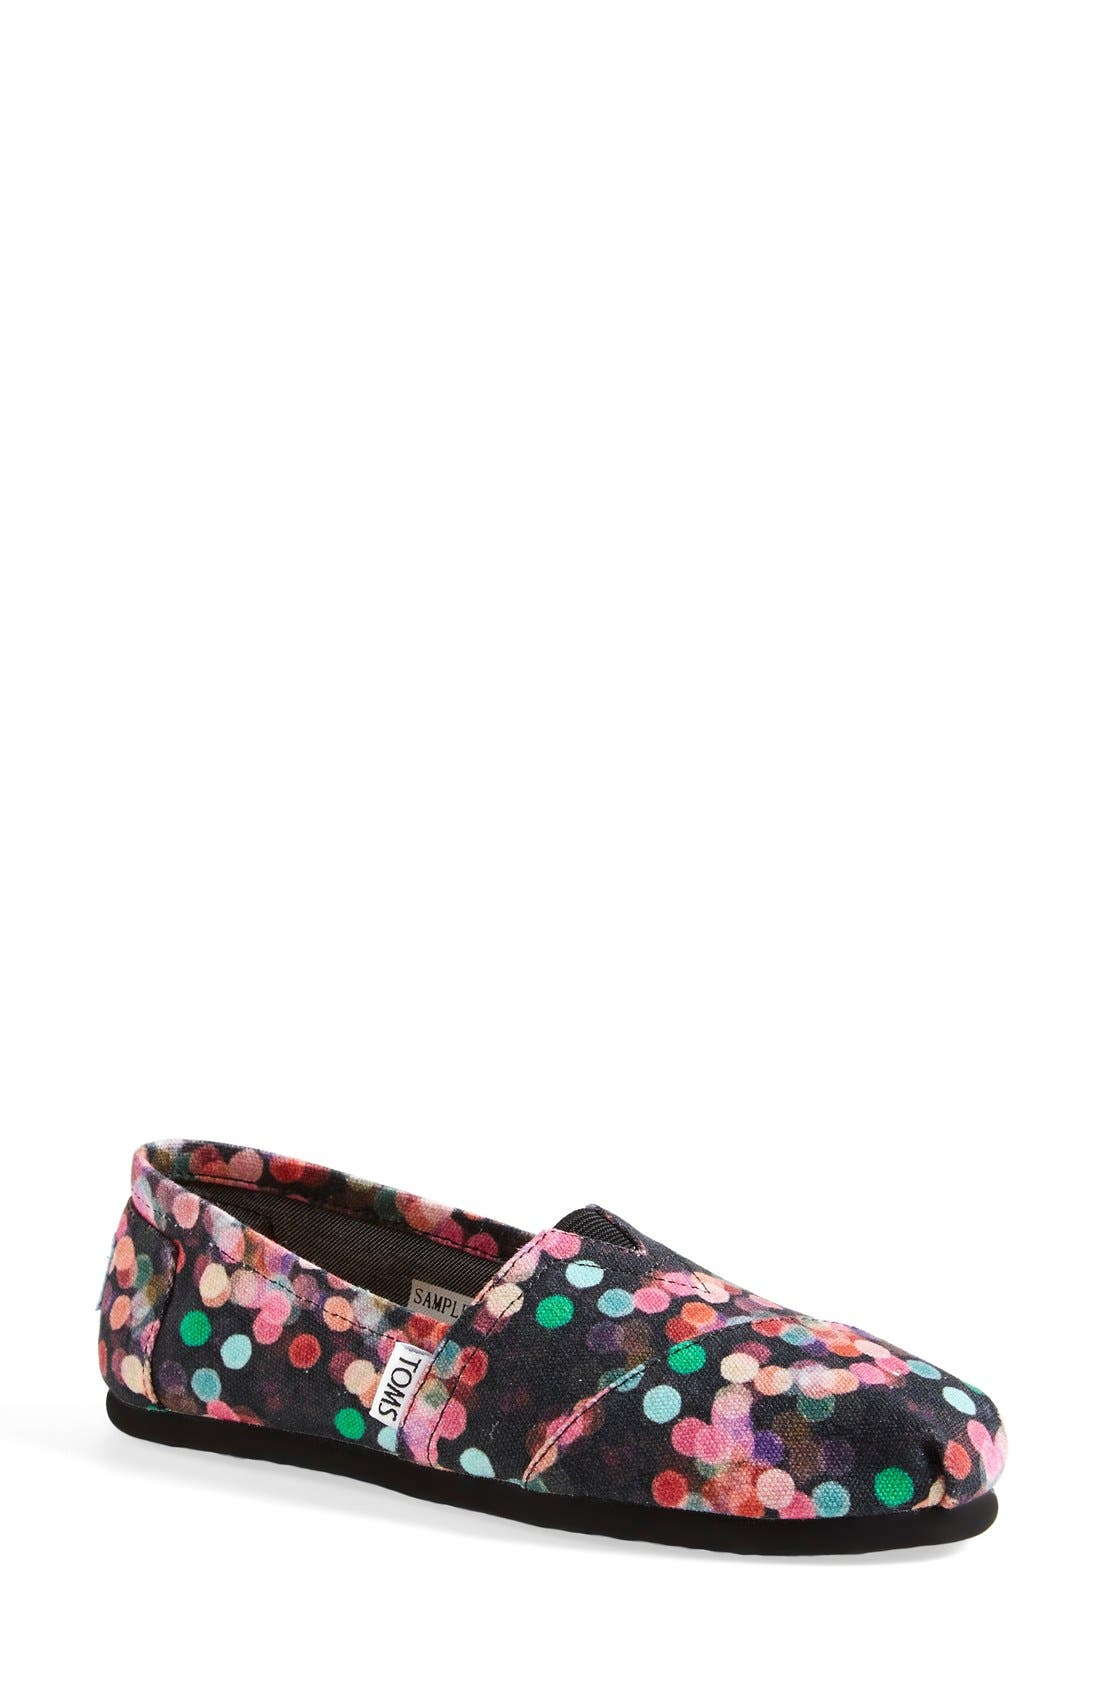 Alternate Image 1 Selected - TOMS 'Classic - Night Lights' Slip-On (Nordstrom Exclusive) (Women)